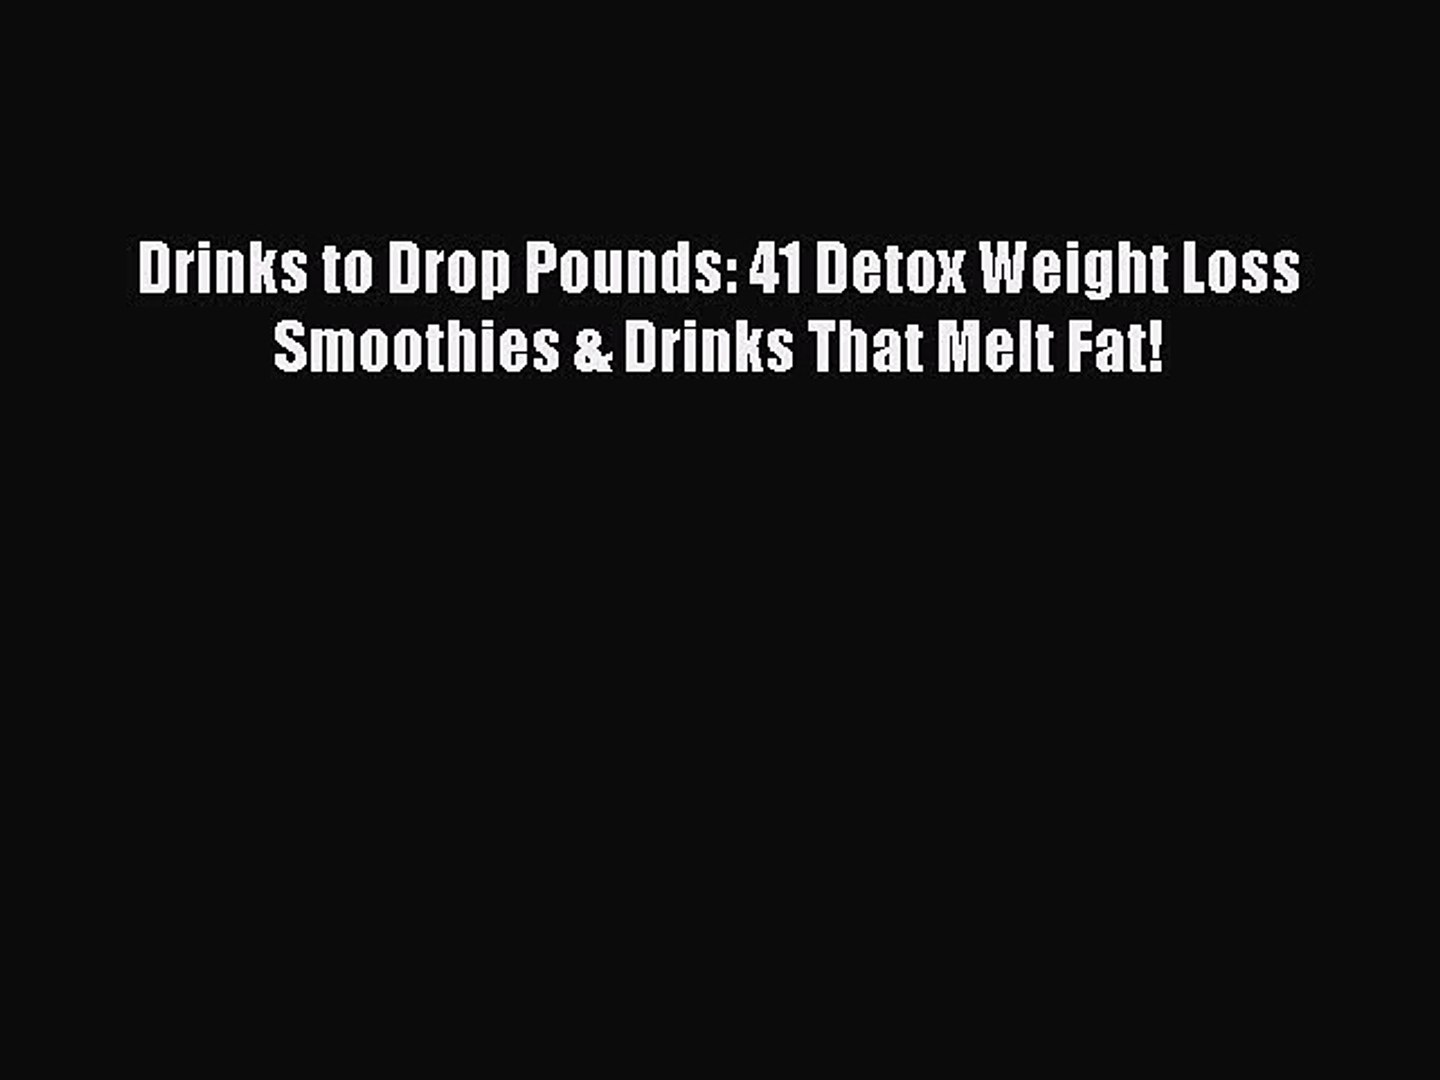 [PDF] Drinks to Drop Pounds: 41 Detox Weight Loss Smoothies & Drinks That Melt Fat! [Read]